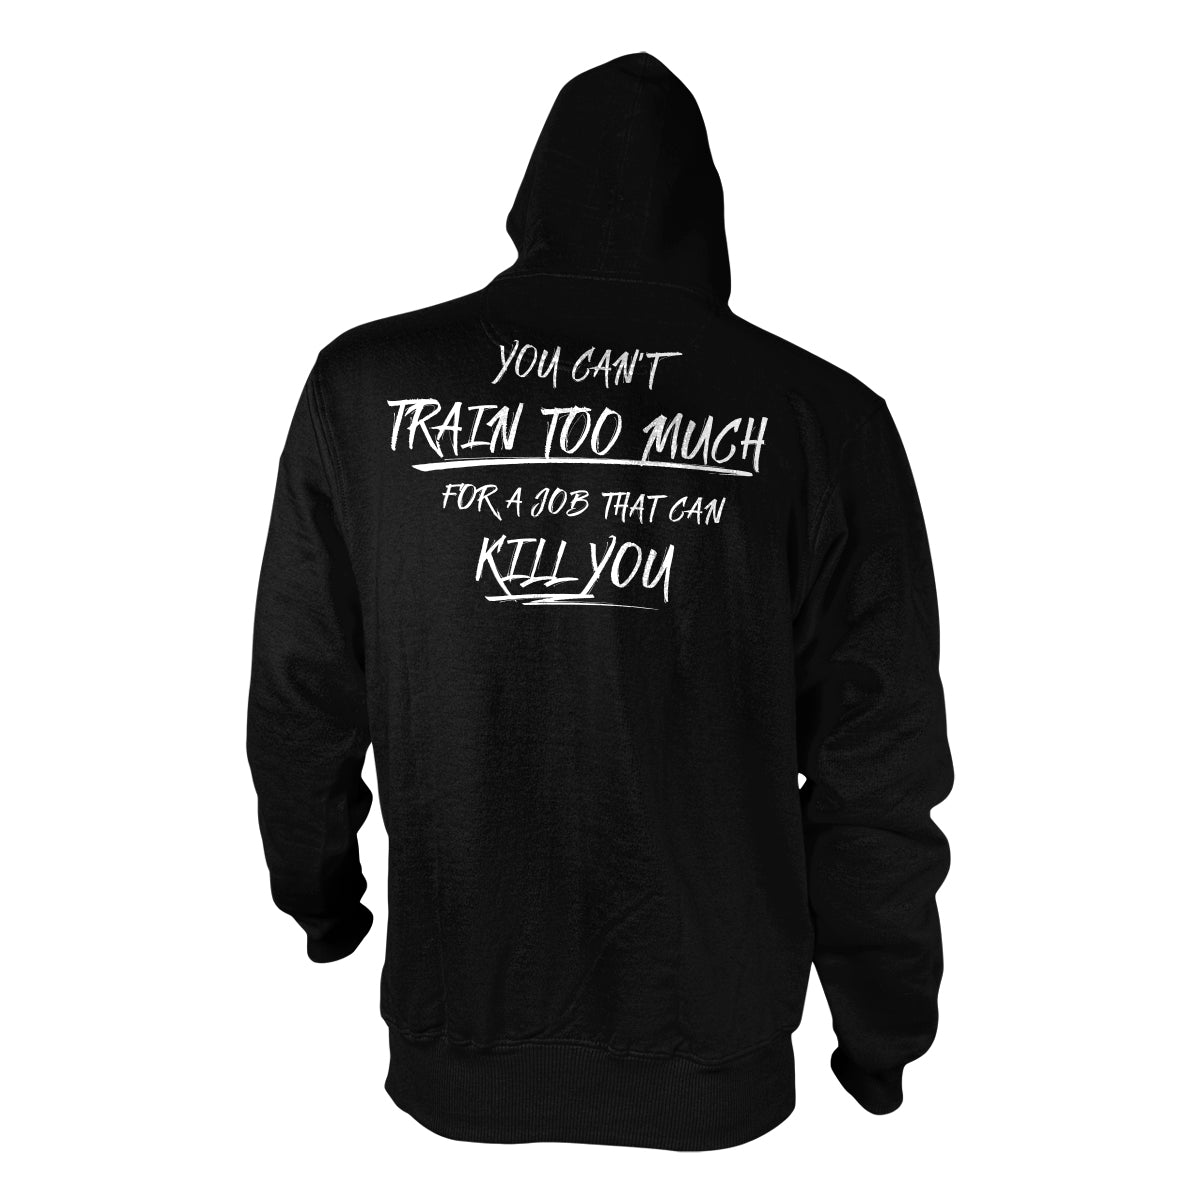 You Can't Train Too Much Hoodie - Black - Hoodies - Pipe Hitters Union